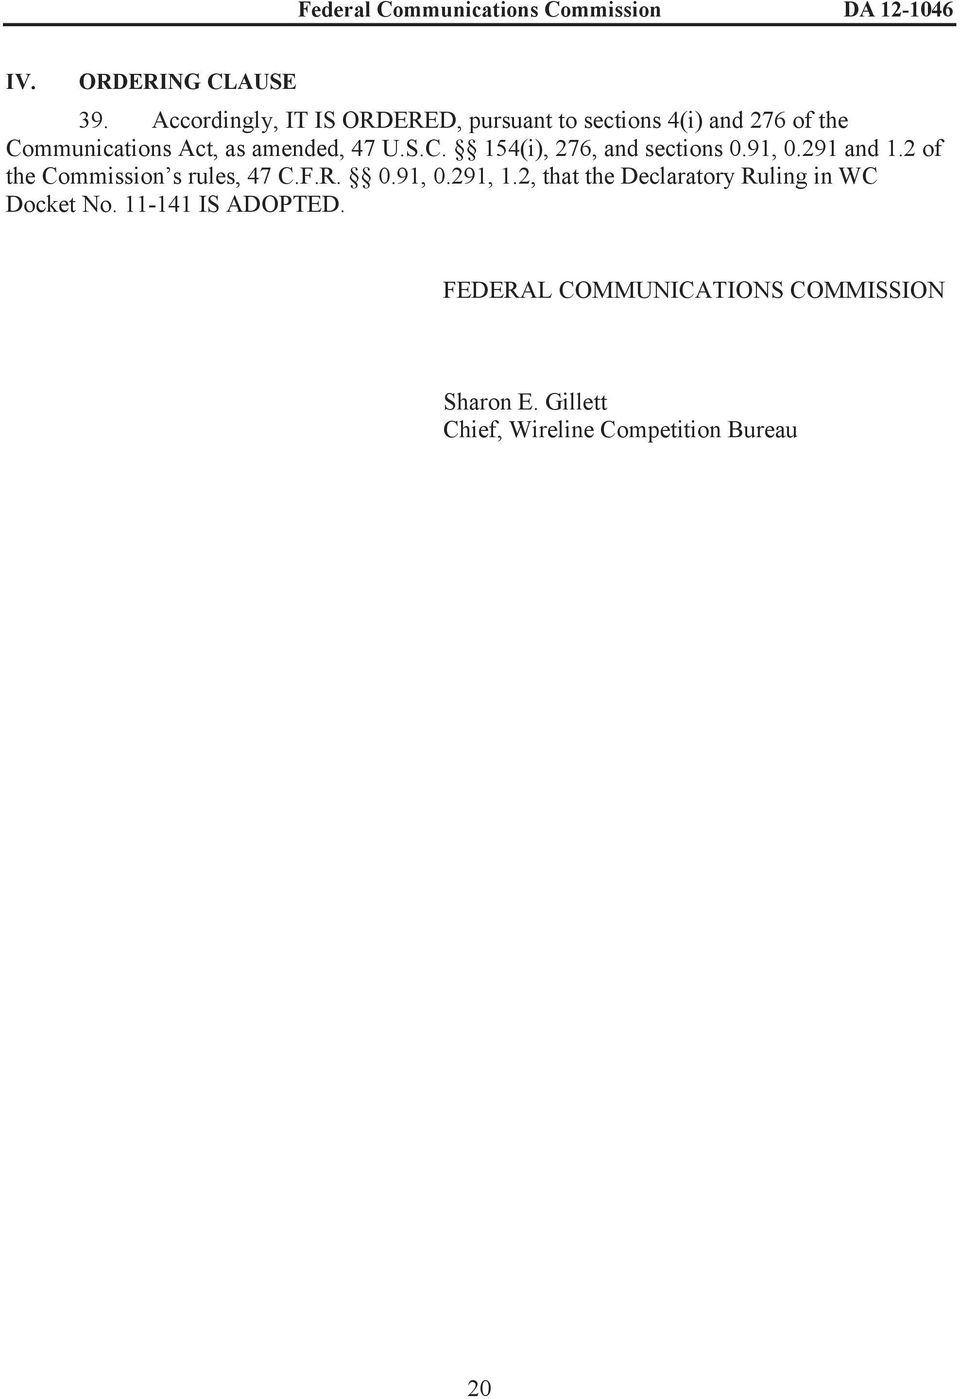 amended, 47 U.S.C. 154(i), 276, and sections 0.91, 0.291 and 1.2 of the Commission s rules, 47 C.